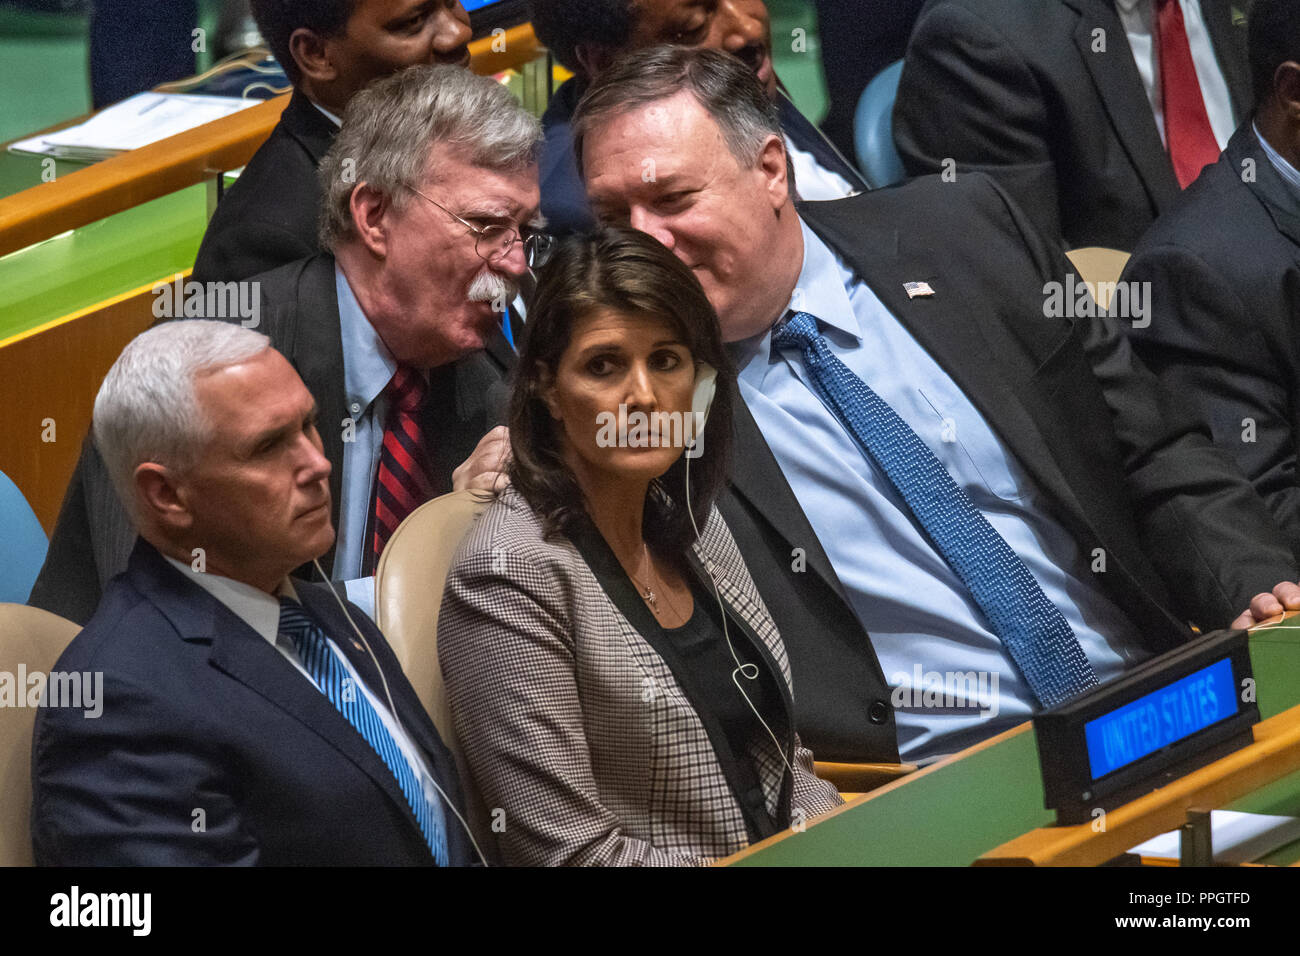 New York, USA, 25 September 2018. US Vice-President Mike Pence, UN Ambassador Nikki Haley, National Security Advisor John Bolton and Secretary of State Mike Pompeo sit at the United Nations General Assembly as they await the speech by President Donald Trump. Photo by Enrique Shore Credit: Enrique Shore/Alamy Live News - Stock Image